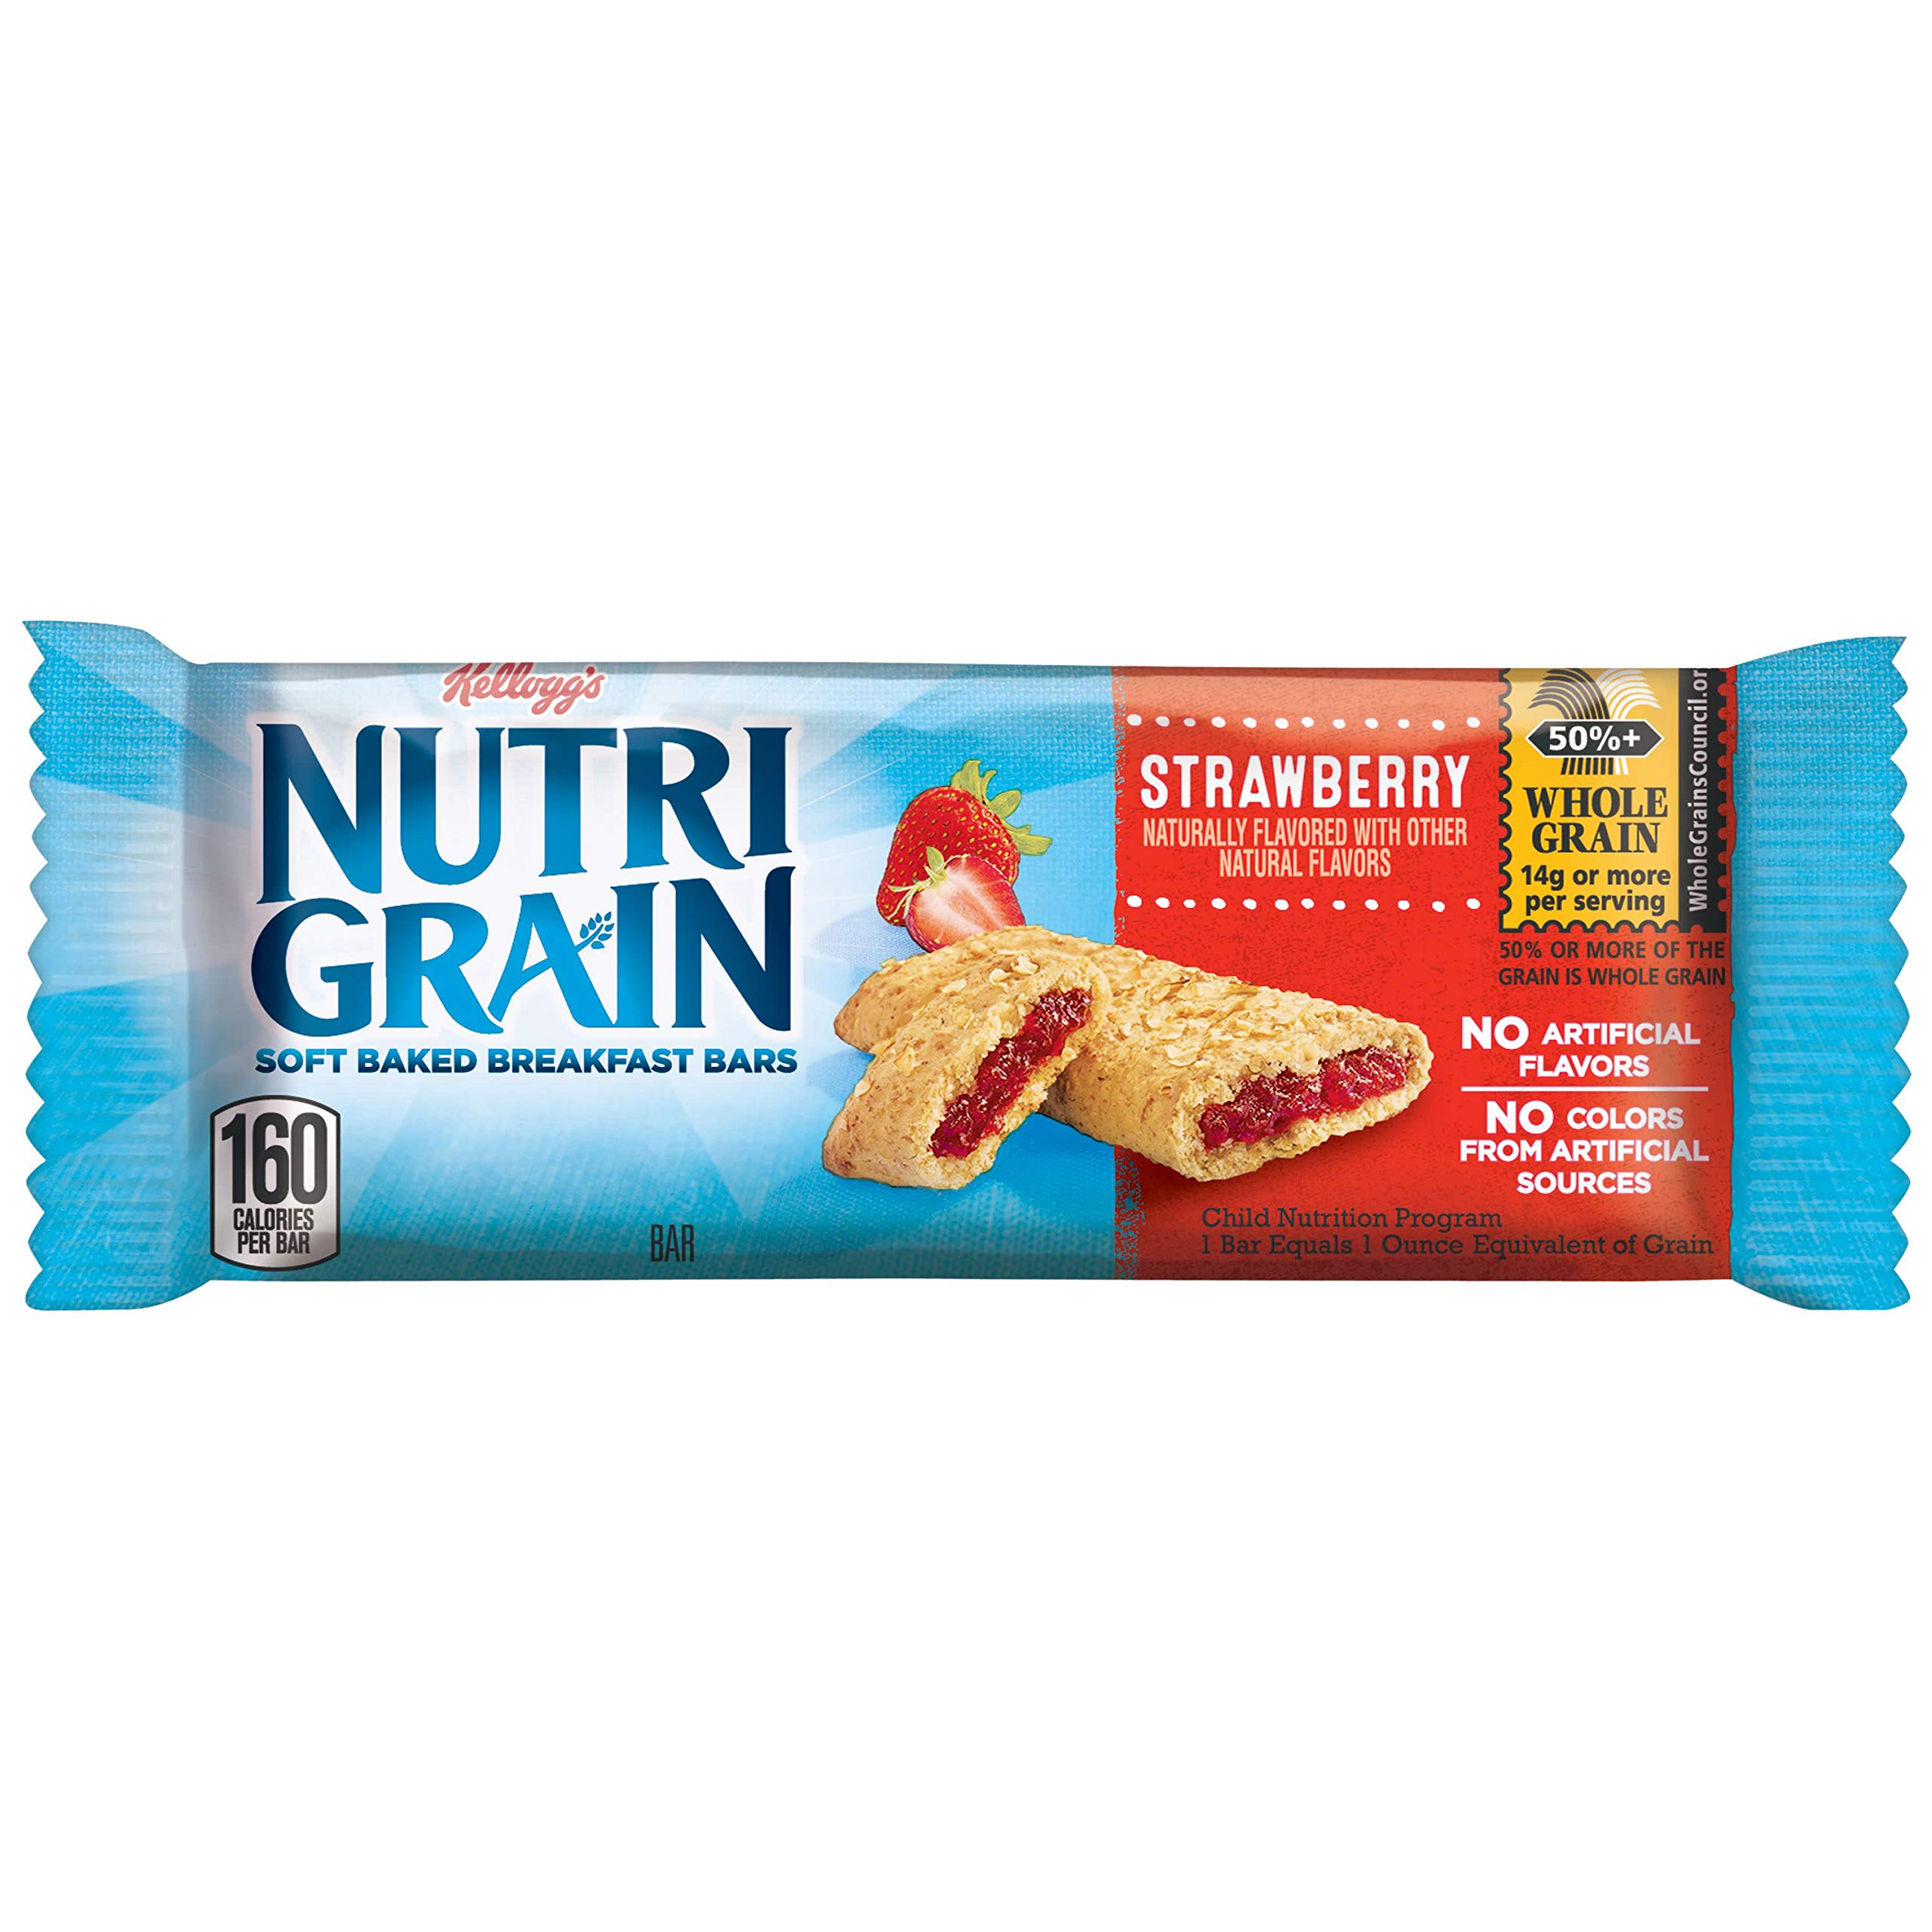 Kellogg's Nutri-Grain, Soft Baked Breakfast Bars, Strawberry, Made with Whole Grain, Strawberry, 24.8oz (96 count) by Nutri-Grain